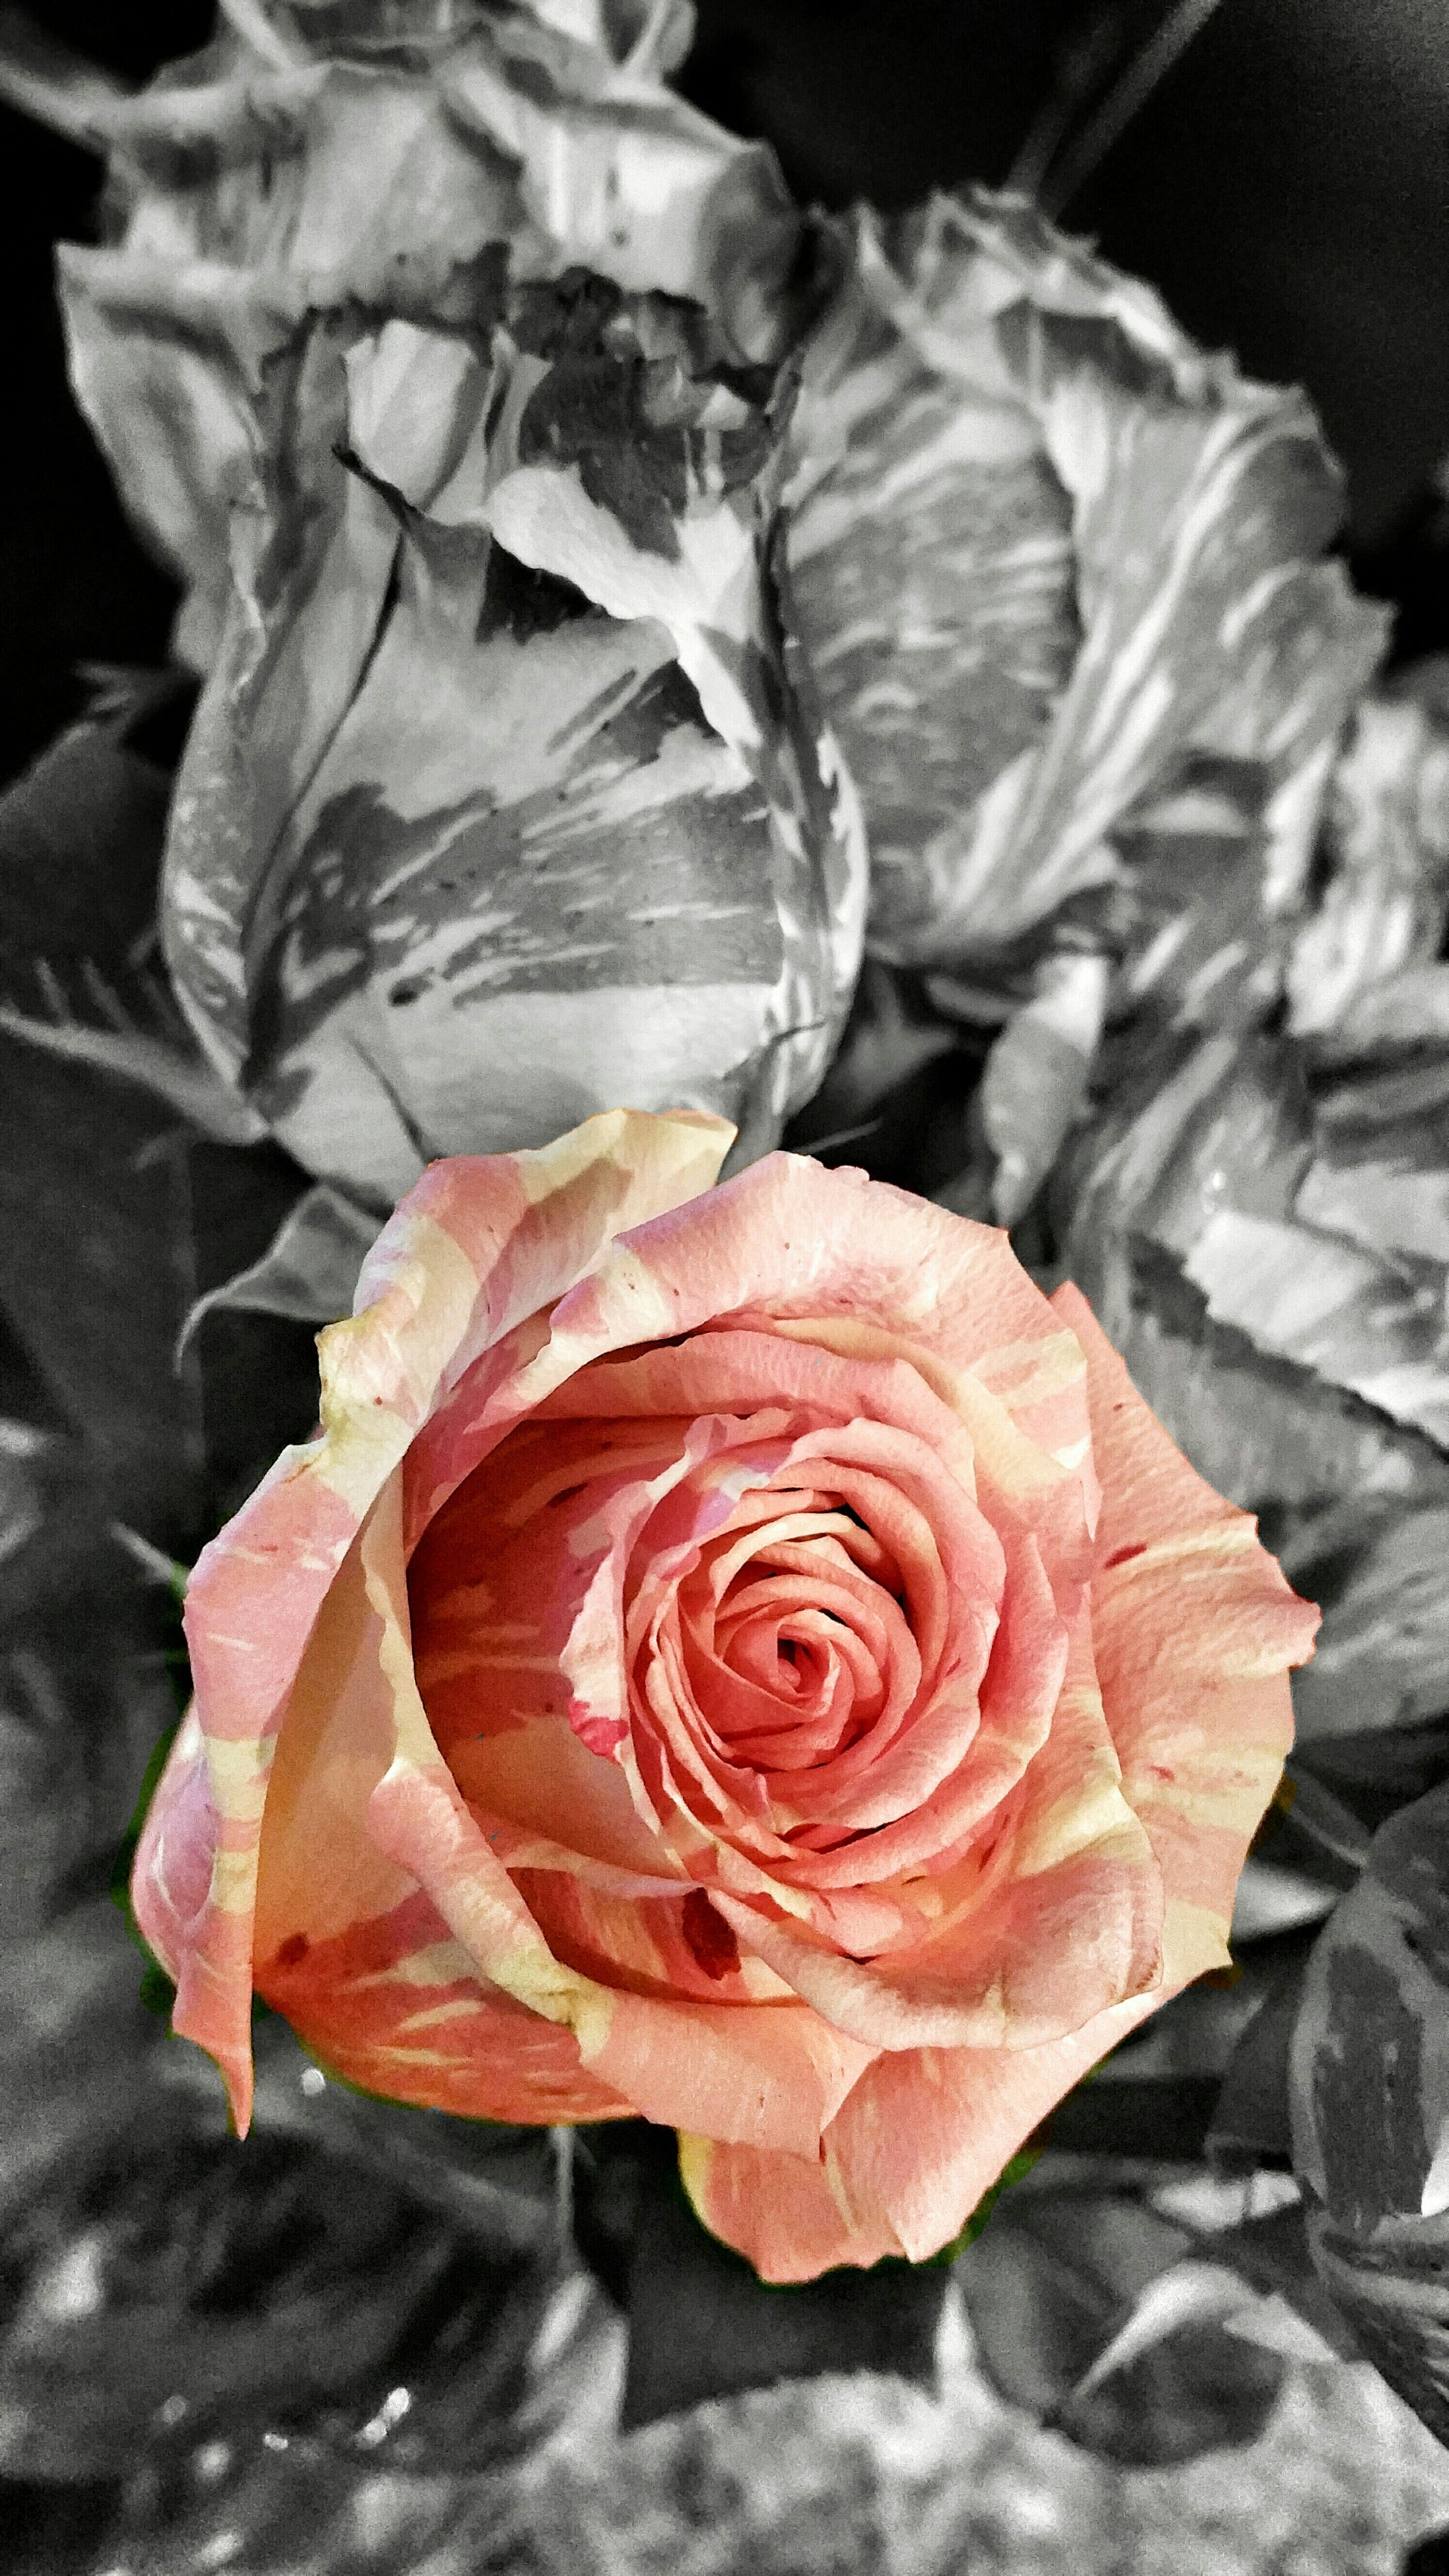 flower, petal, rose - flower, flower head, fragility, close-up, freshness, beauty in nature, single flower, rose, nature, focus on foreground, natural pattern, high angle view, growth, no people, blooming, plant, day, single rose